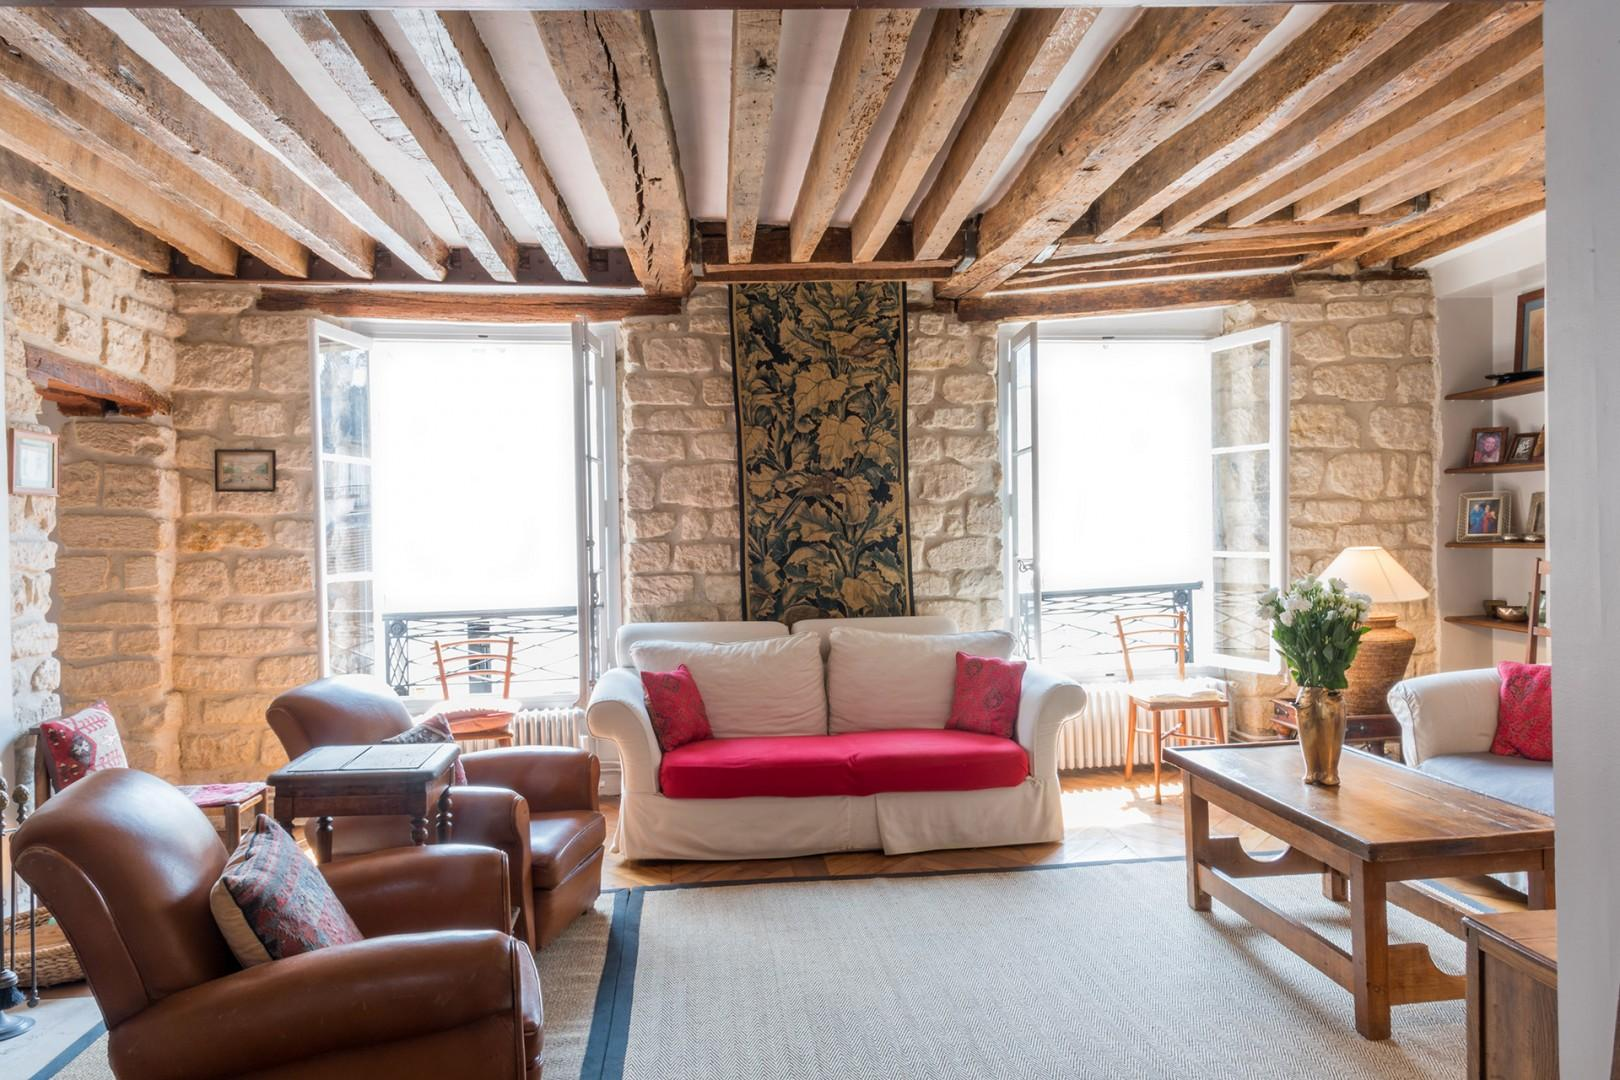 Spend relaxing evenings at home in this cozy Paris rental.